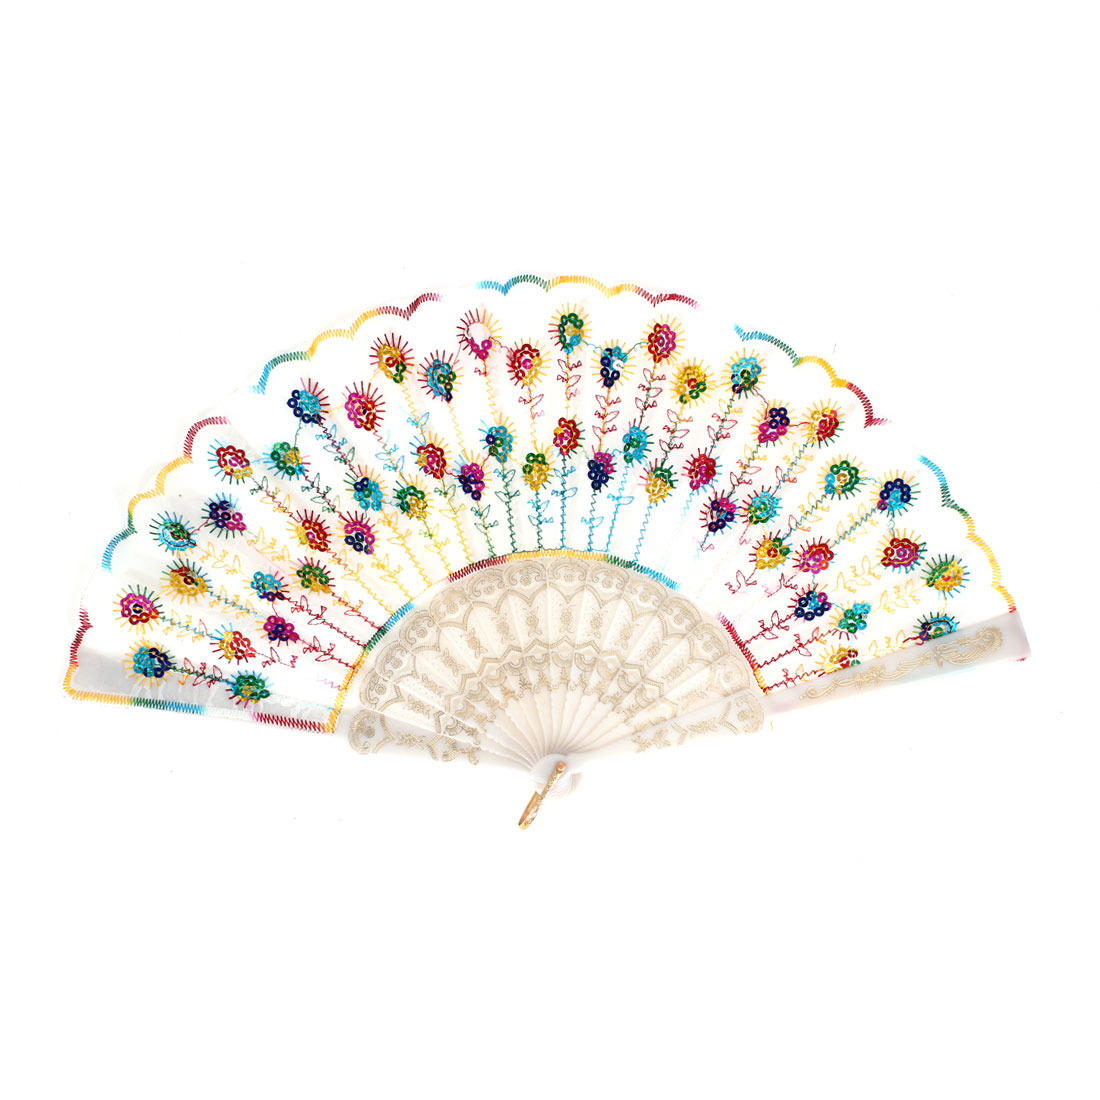 Multicolor Sequins Embroidered Plastic Ribs Folding Hand Fan White